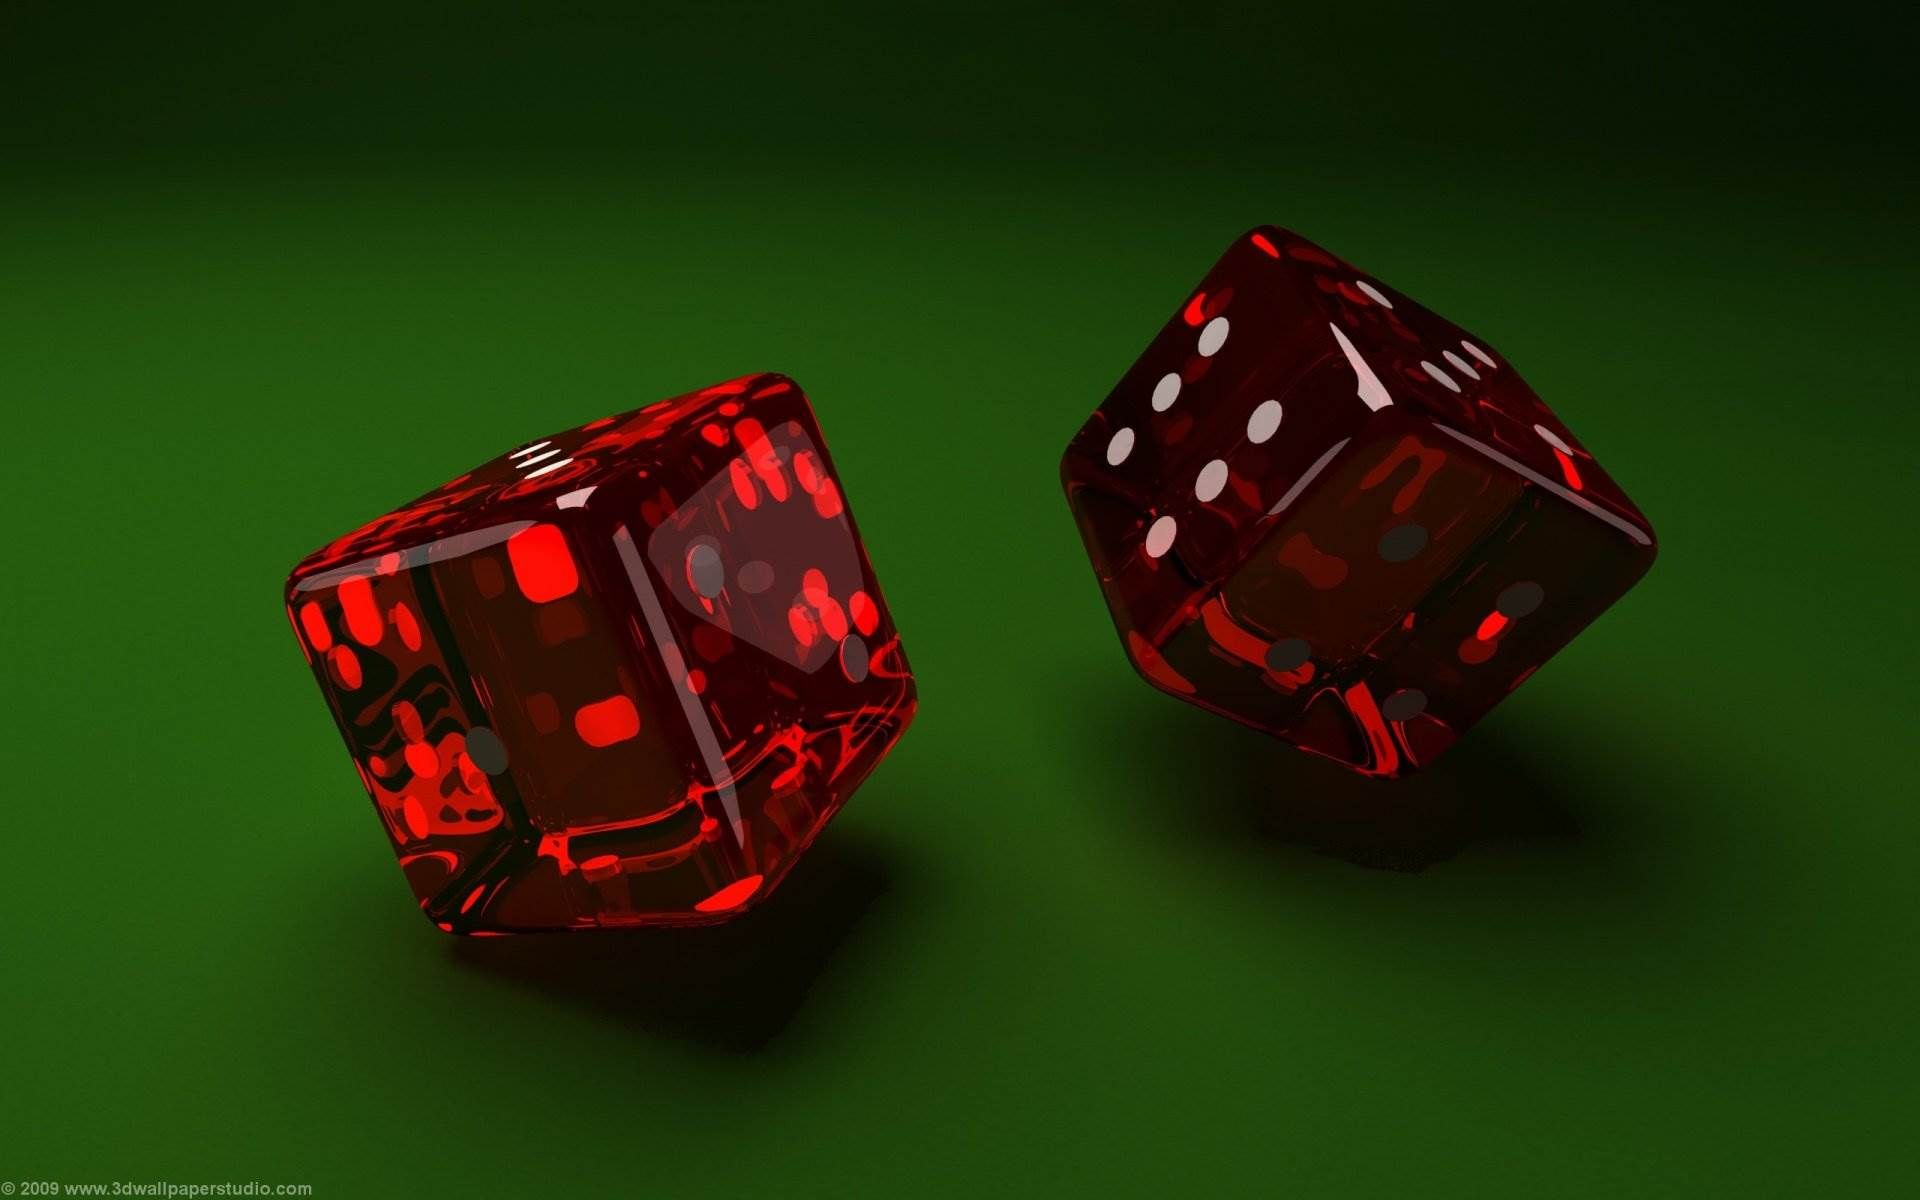 The Most Effective Online Casinos For Real Money